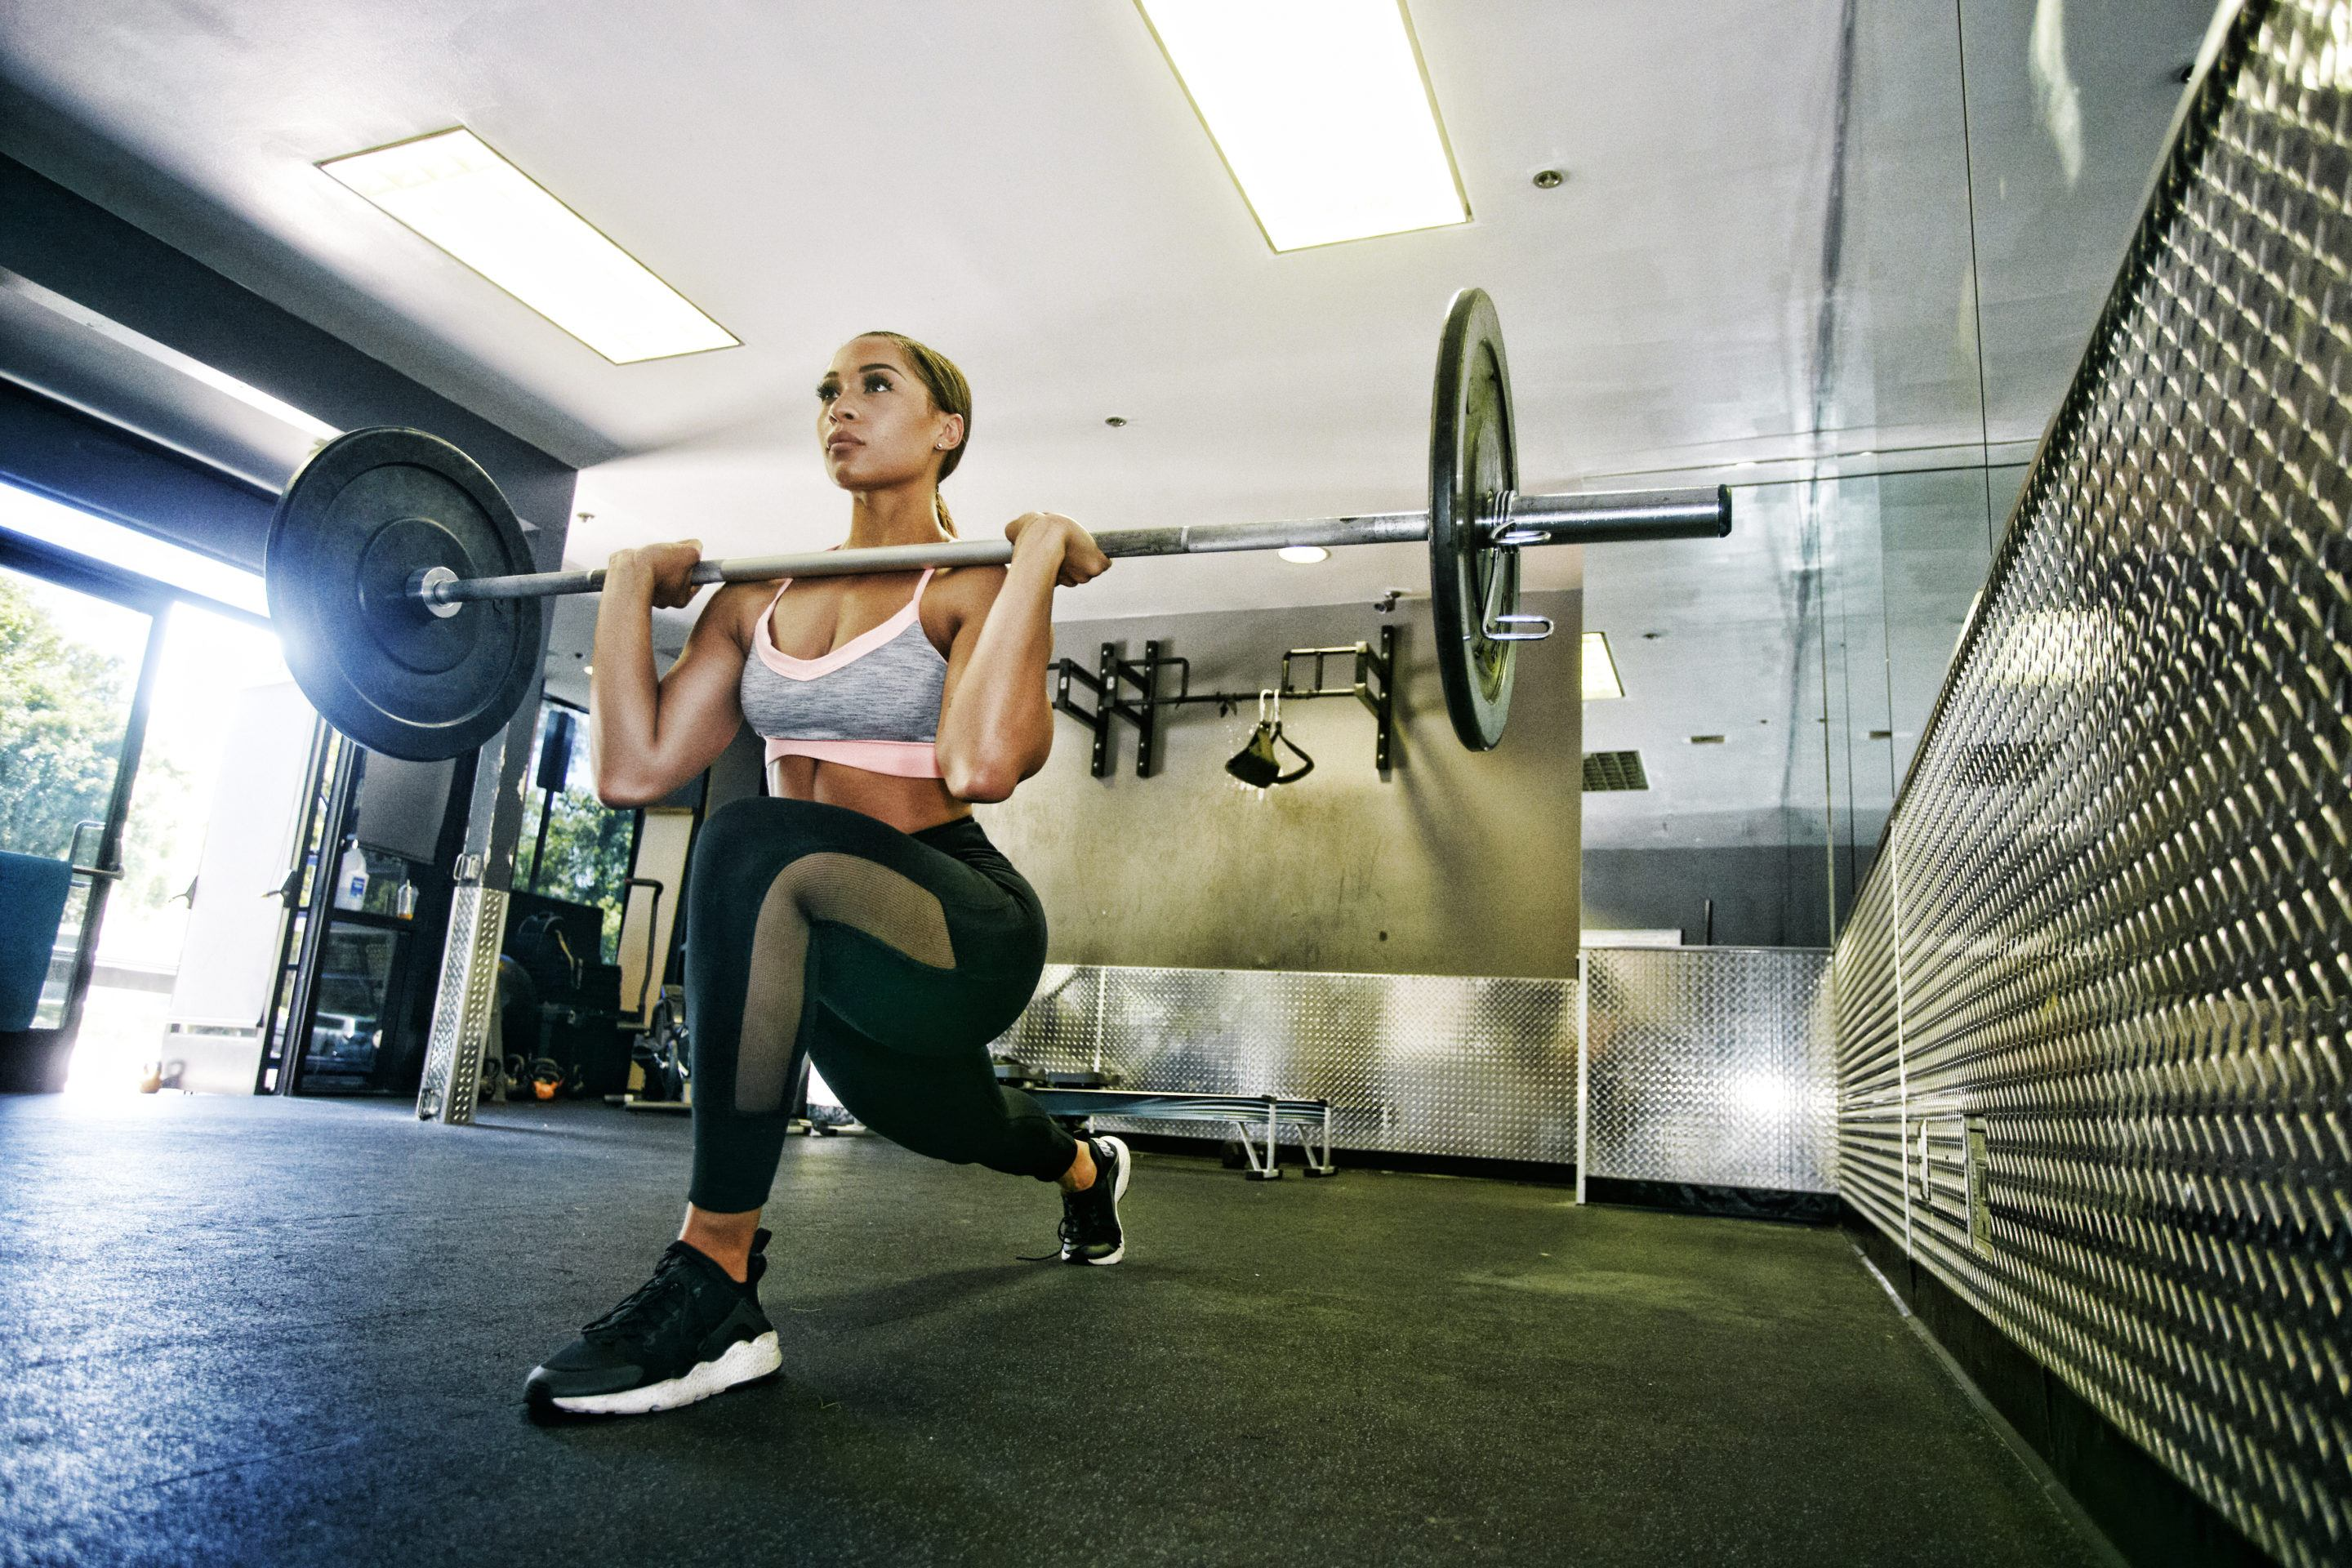 Thumbnail for The Smartest Ways to Warm up for Strength Training, According to Fitness Pros